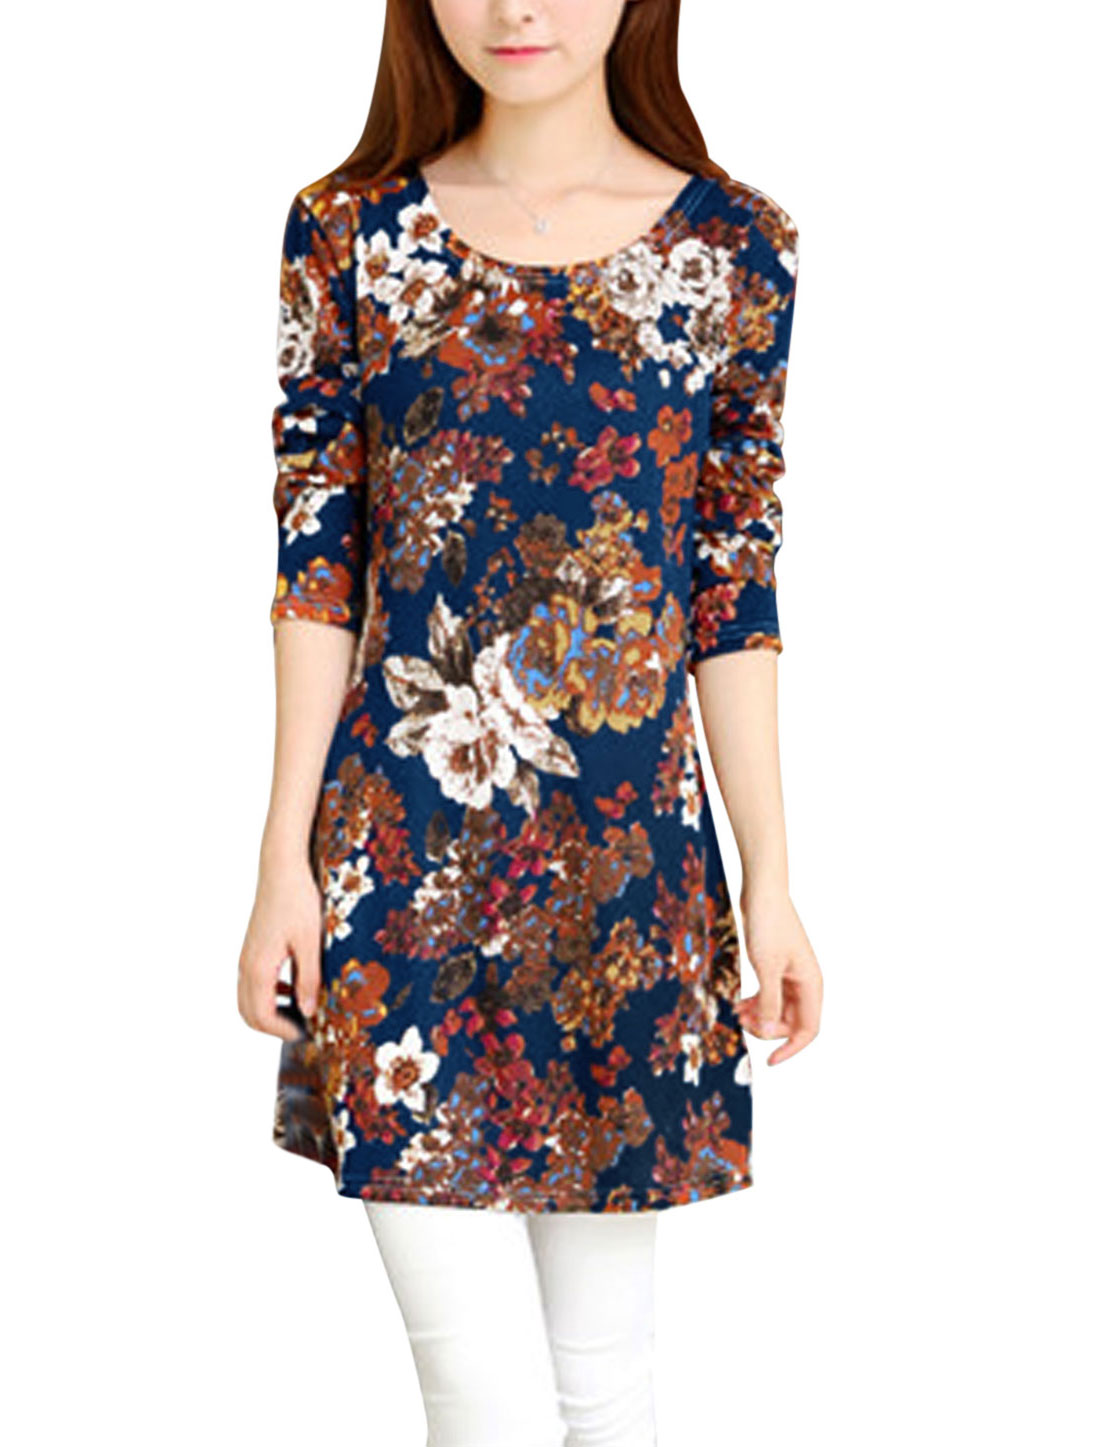 Ladies Navy Blue Brown Long Sleeves Flower Pattern Pullover Knit Dress S